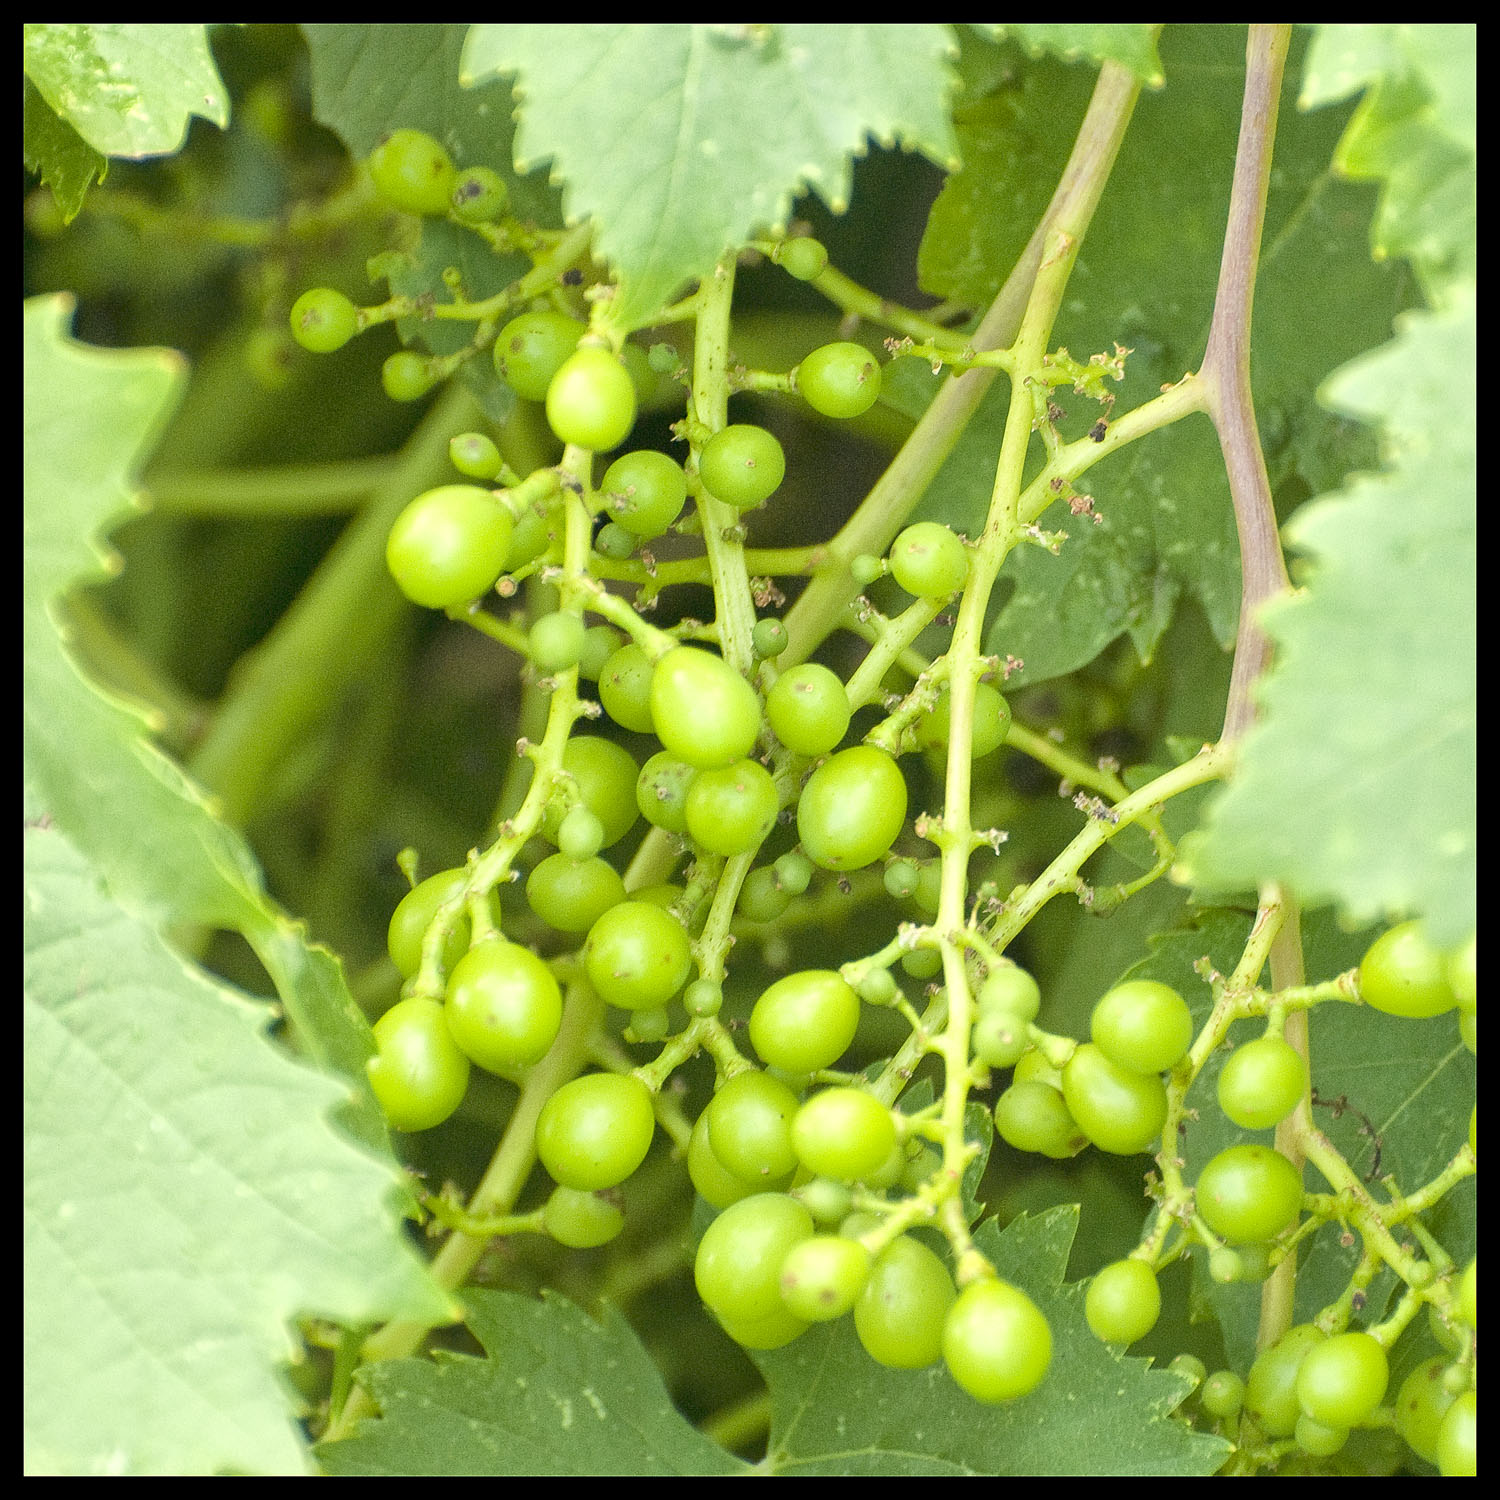 Developing Grapes